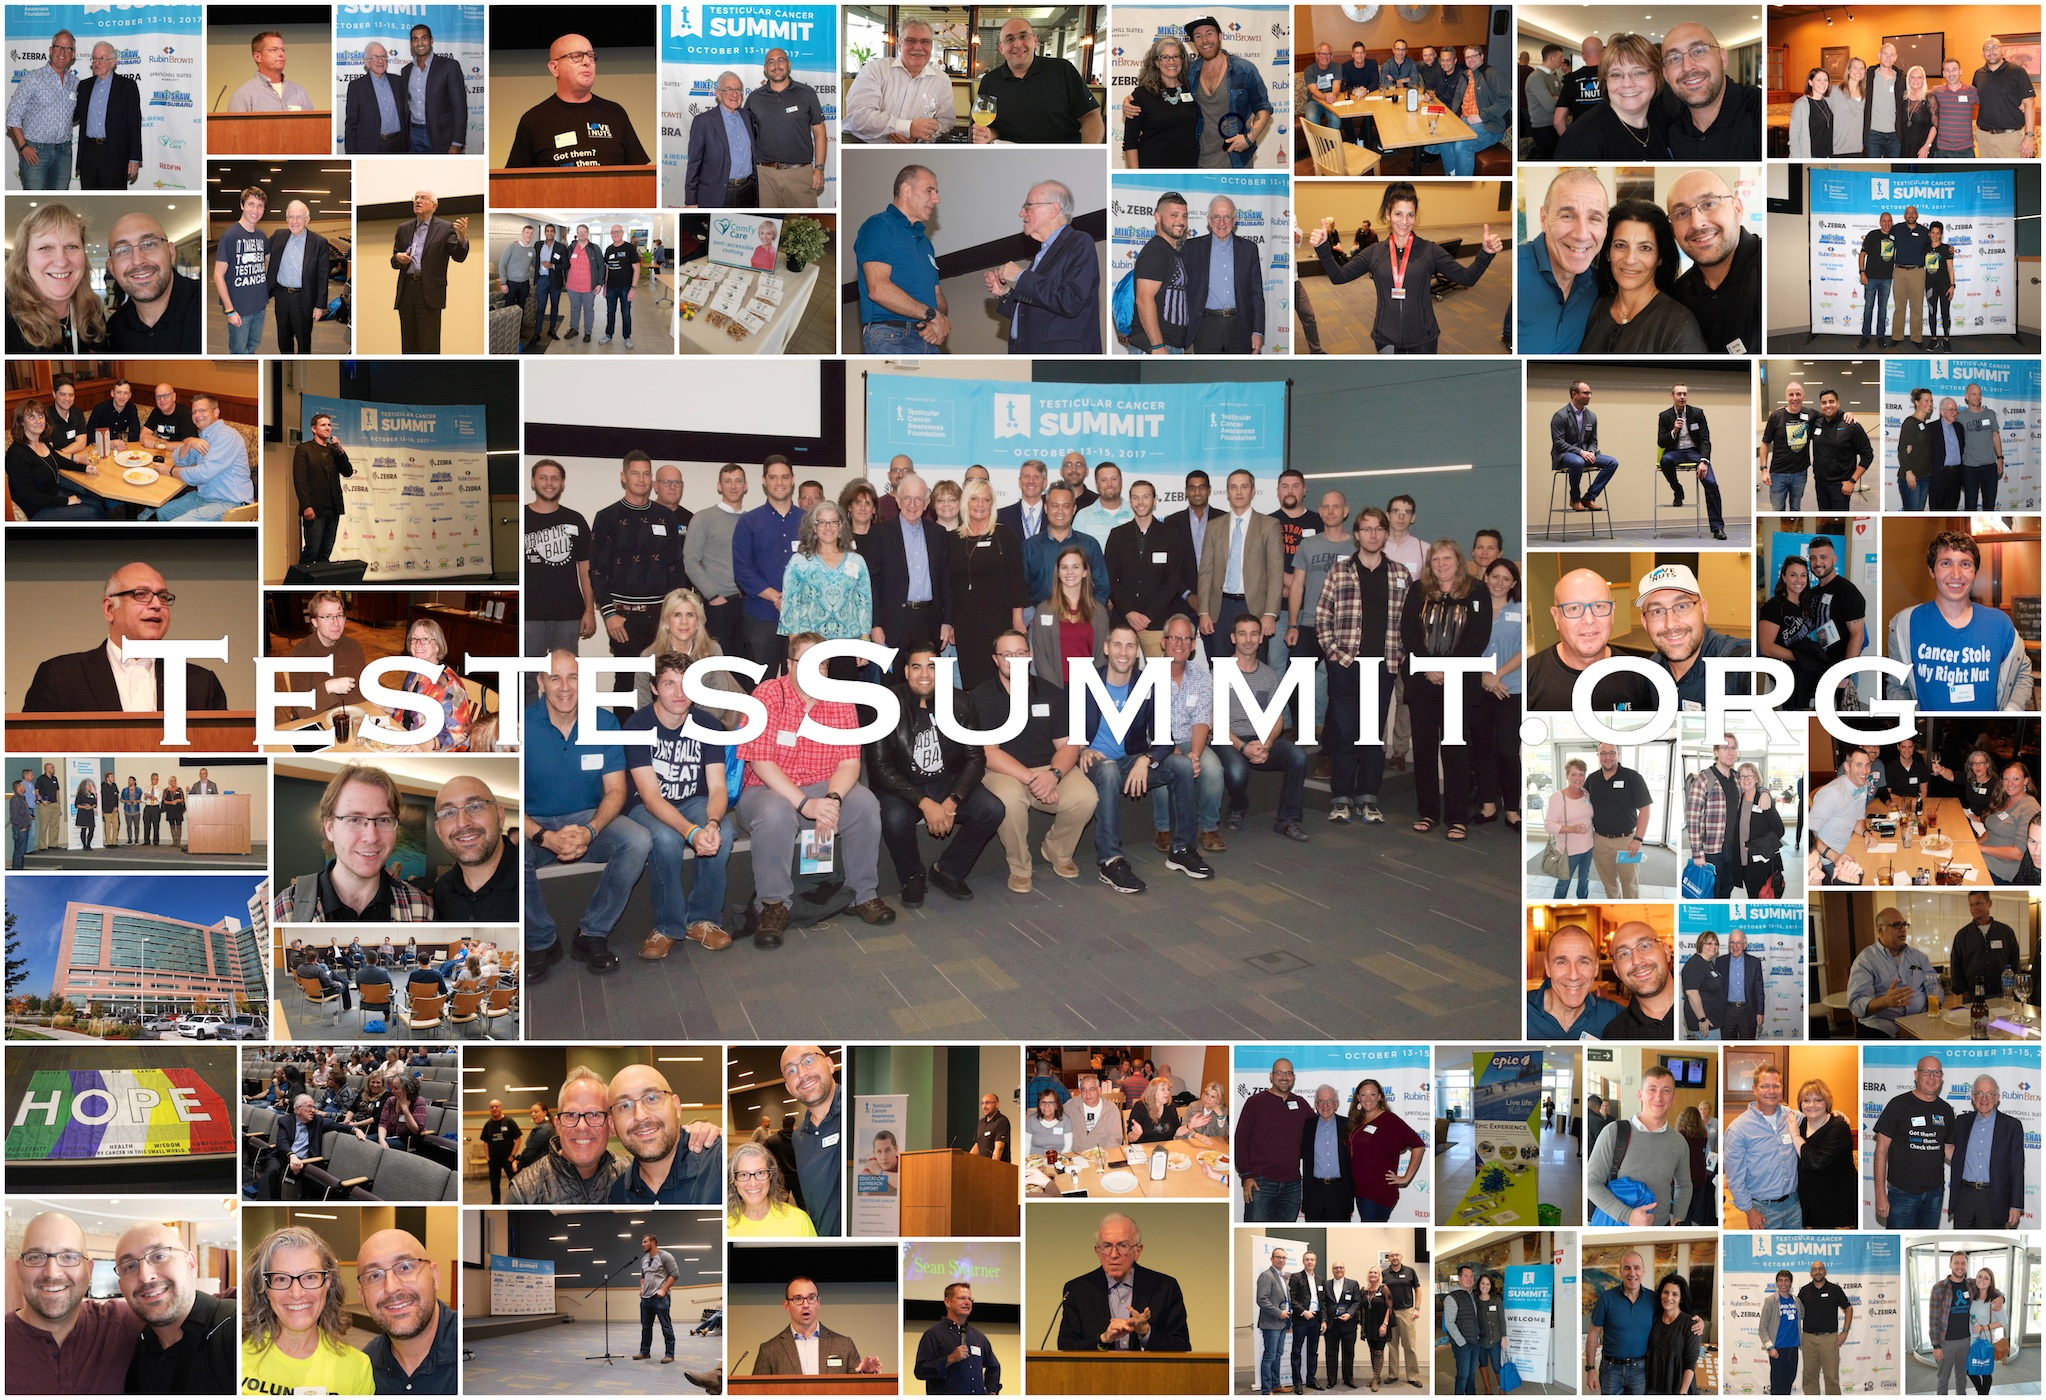 TestesSummit Collage 3 HD WM (3).jpg